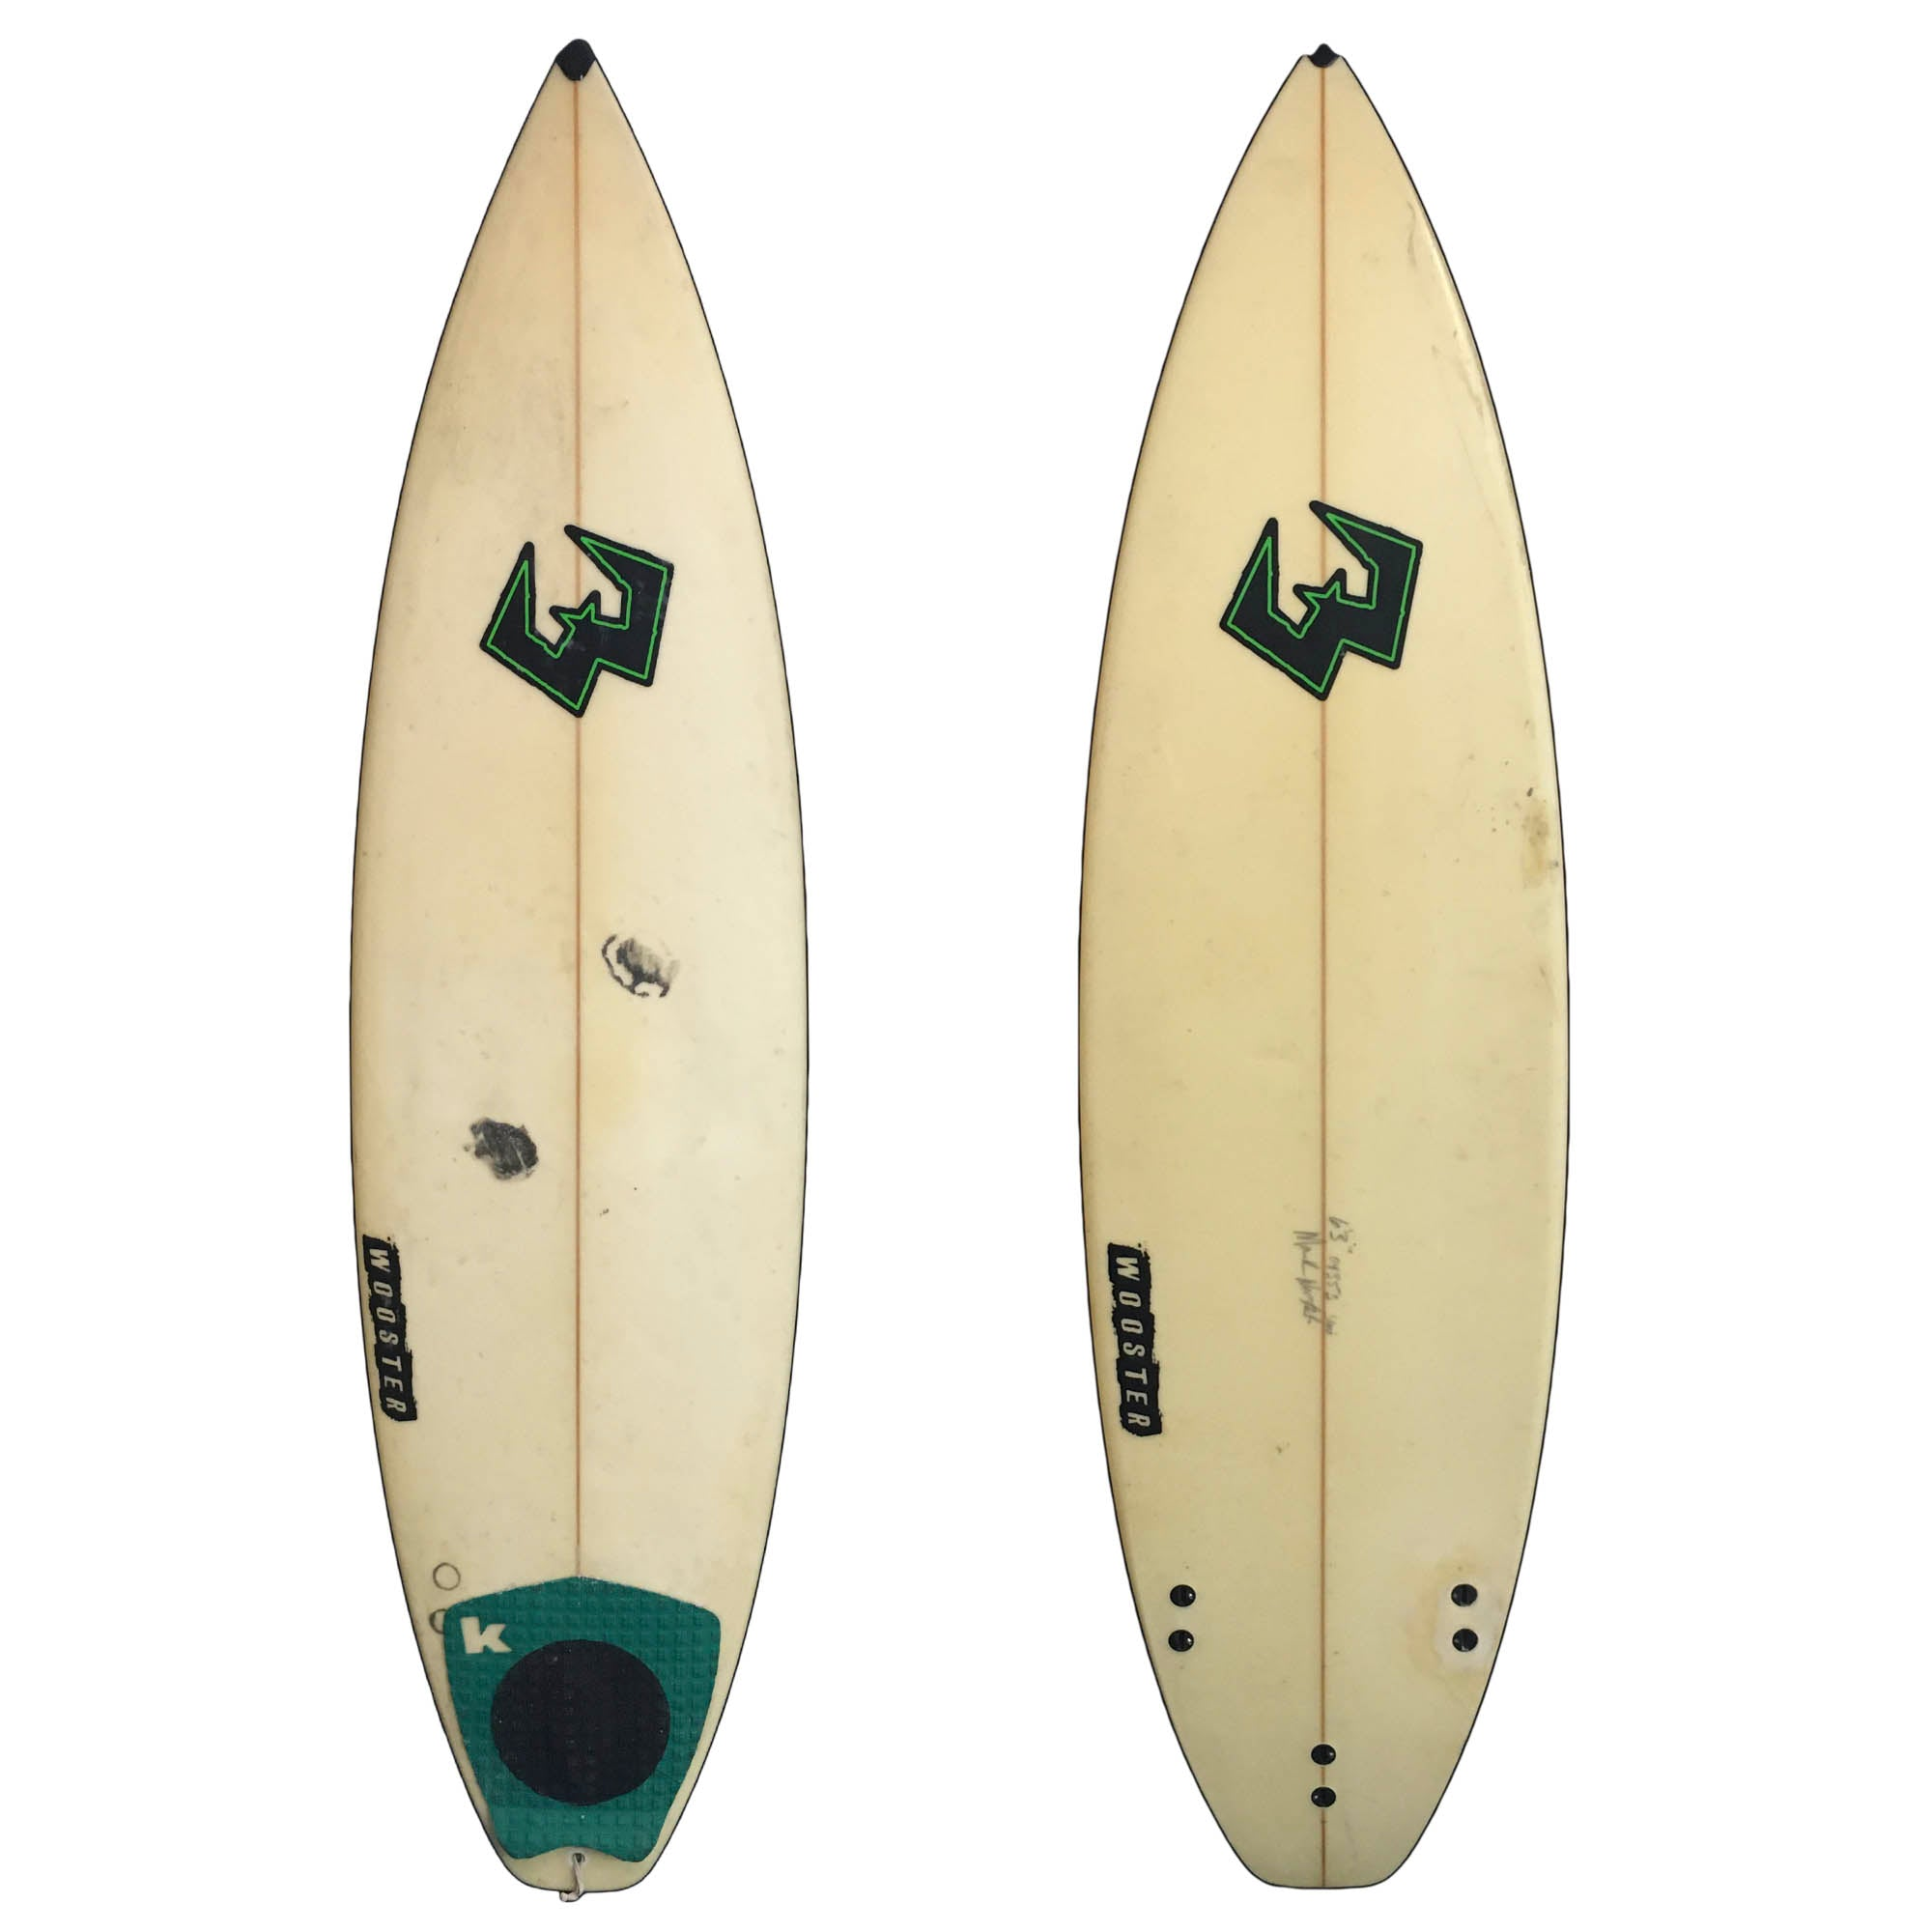 Wooster 6'3 Used Surfboard